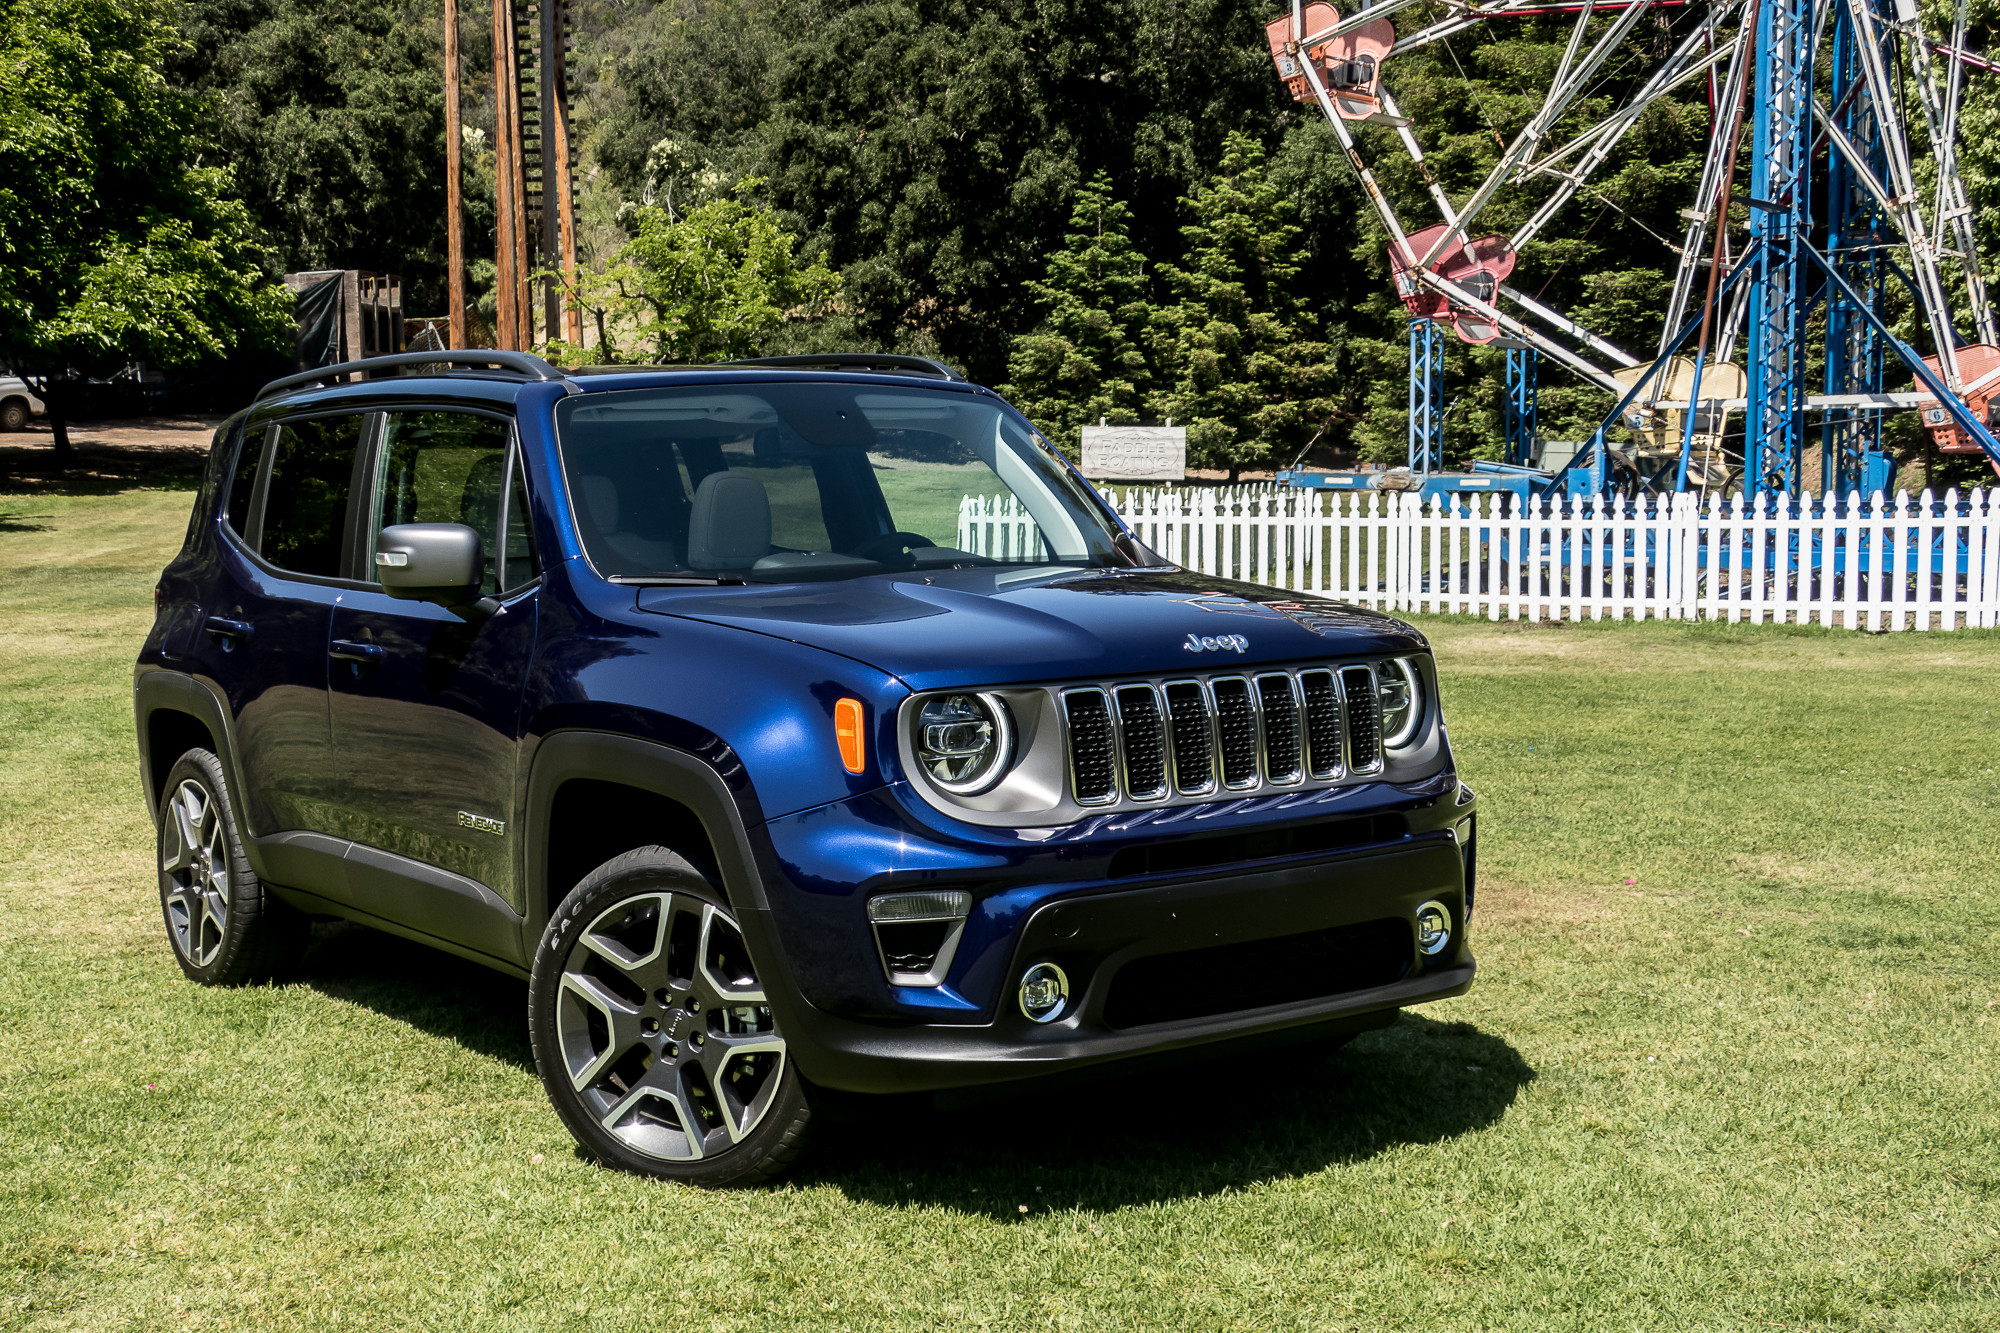 jeep-renegade-2019-01-angle--blue--exterior--front.jpg